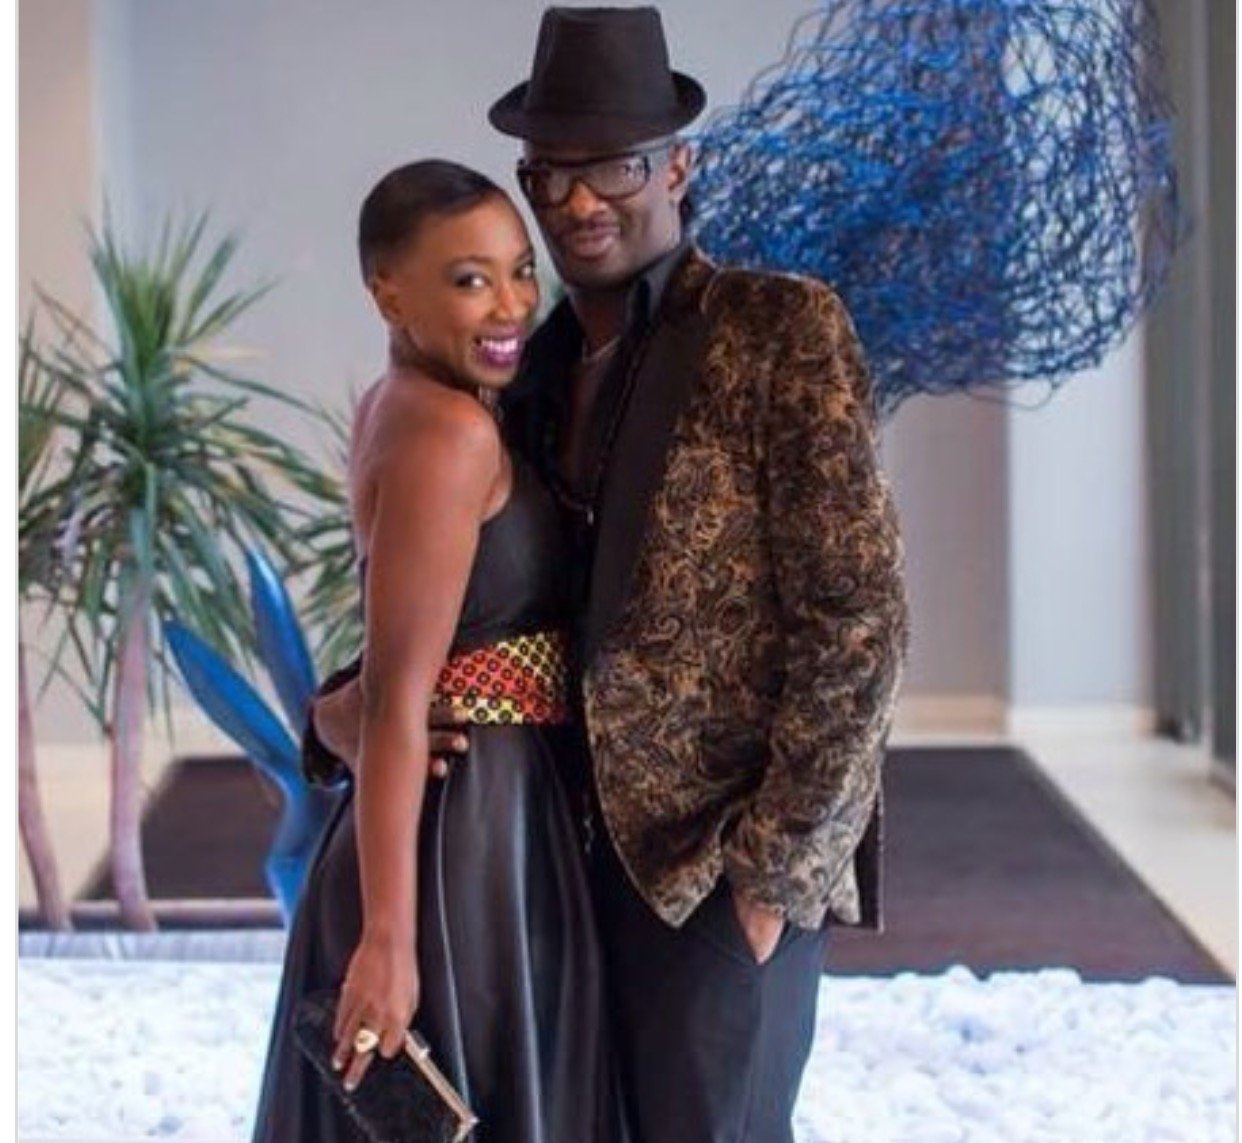 #IfikieWahu: Fans want to know who took Nameless' bedroom picture because Wahu is back in Kenya